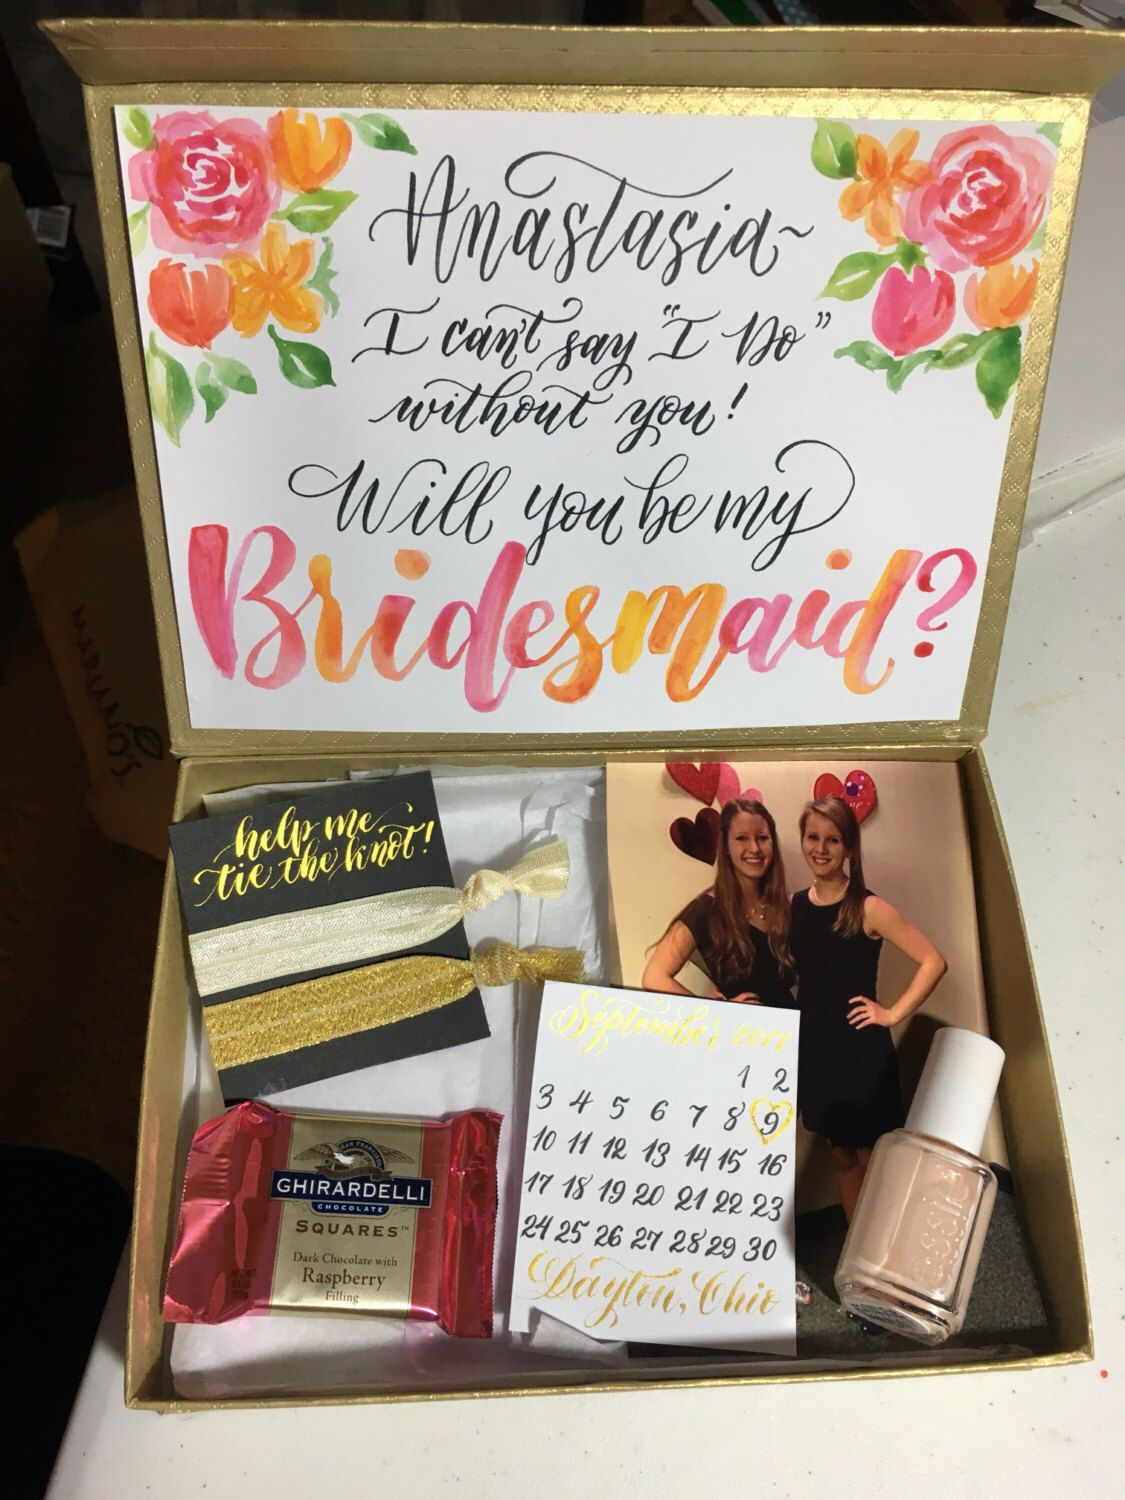 Personalized Bridesmaid Proposal Box 8 5 X 6 X 1 5 Inches